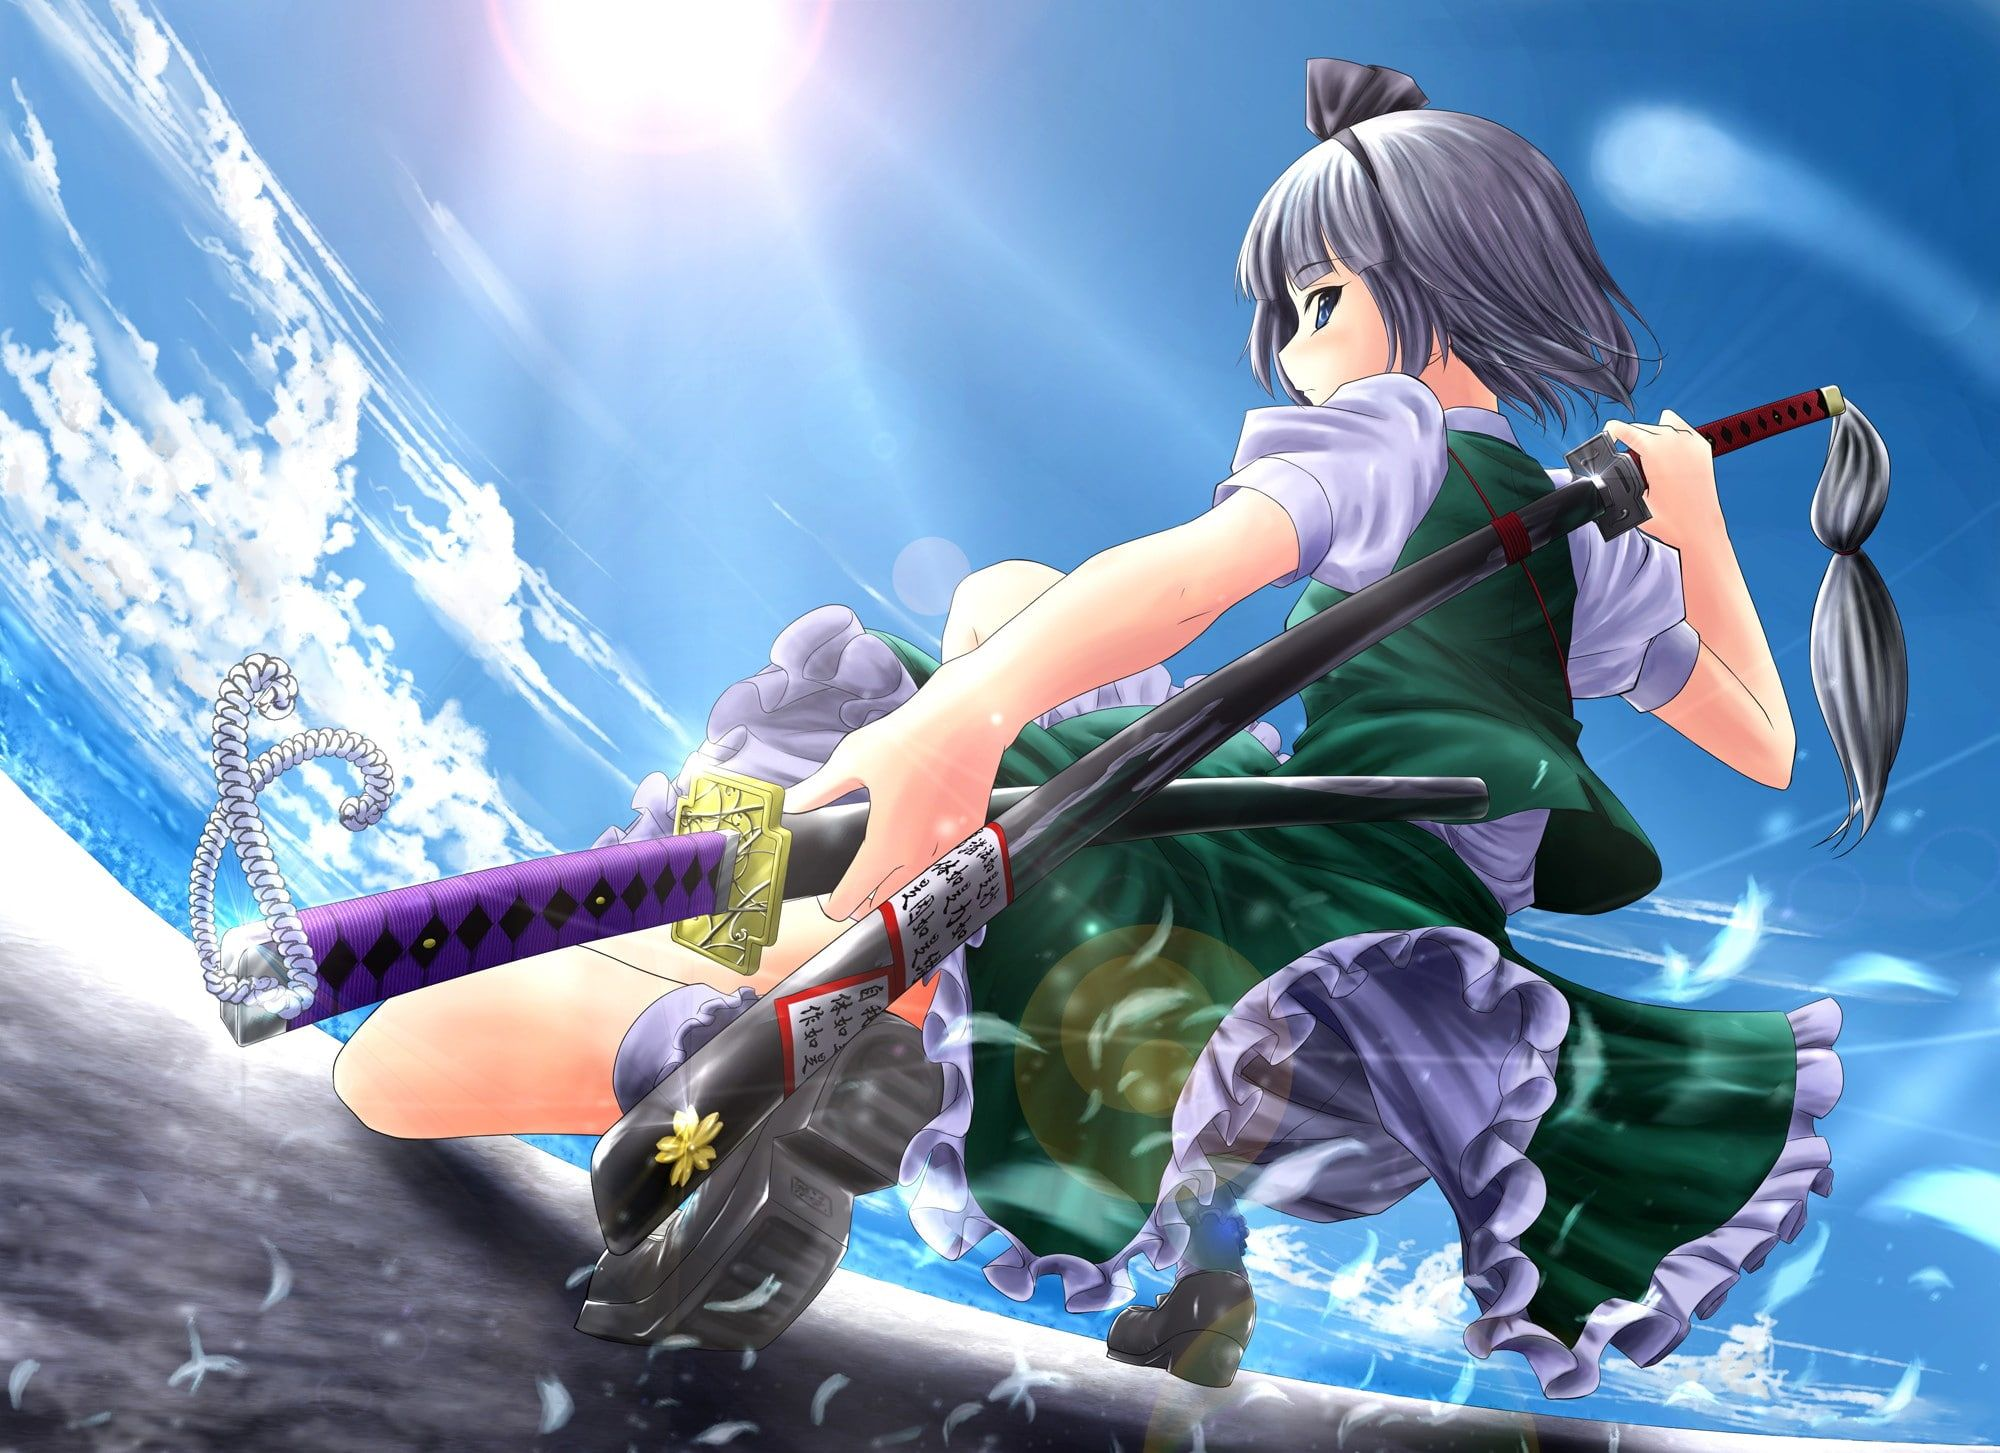 Anime Girls Sword Touhou Konpaku Youmu 1080p Wallpaper